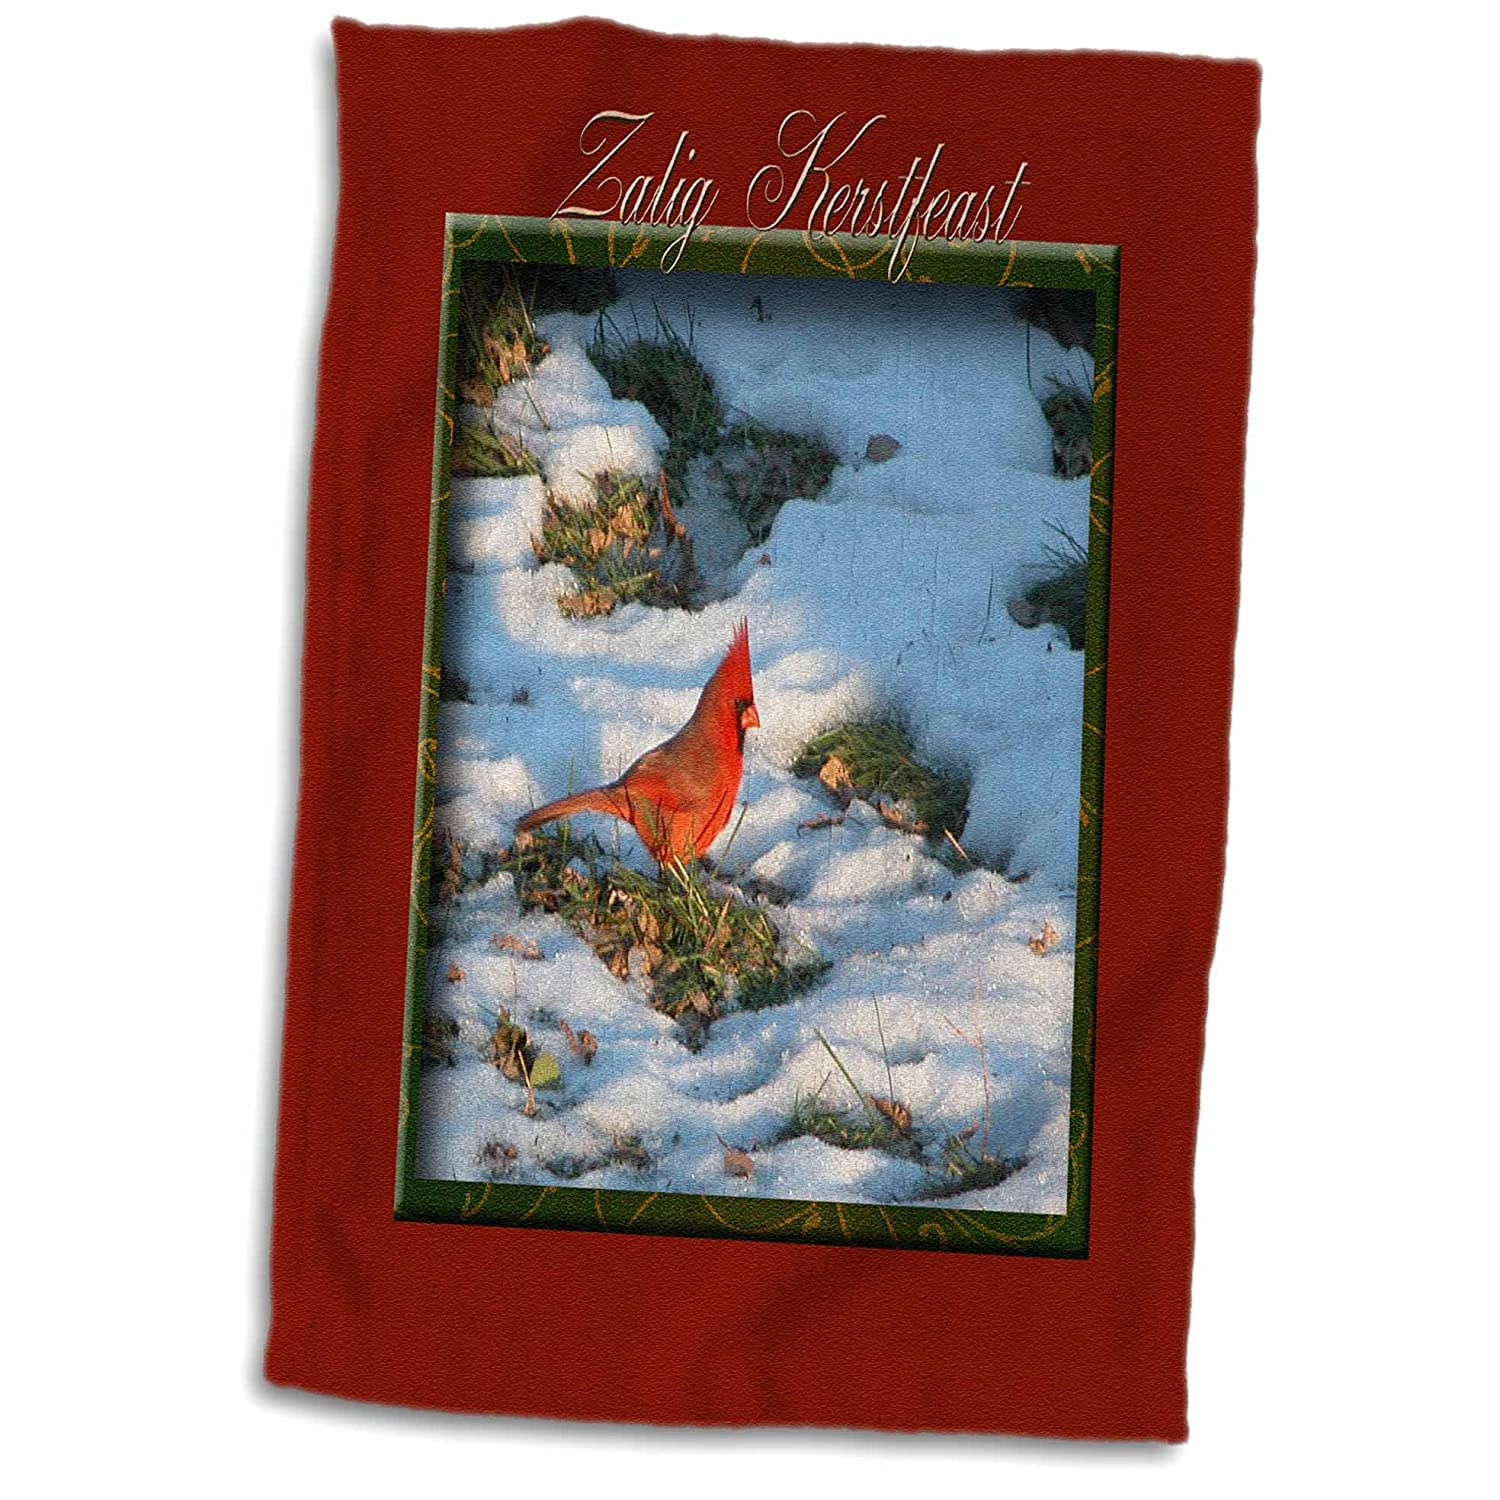 Zalig Kerstfeast Merry Christmas in Dutch 15x22 Hand Towel TWL/_37015/_1 Cardinal 3dRose Beverly Turner Christmas Other Languages